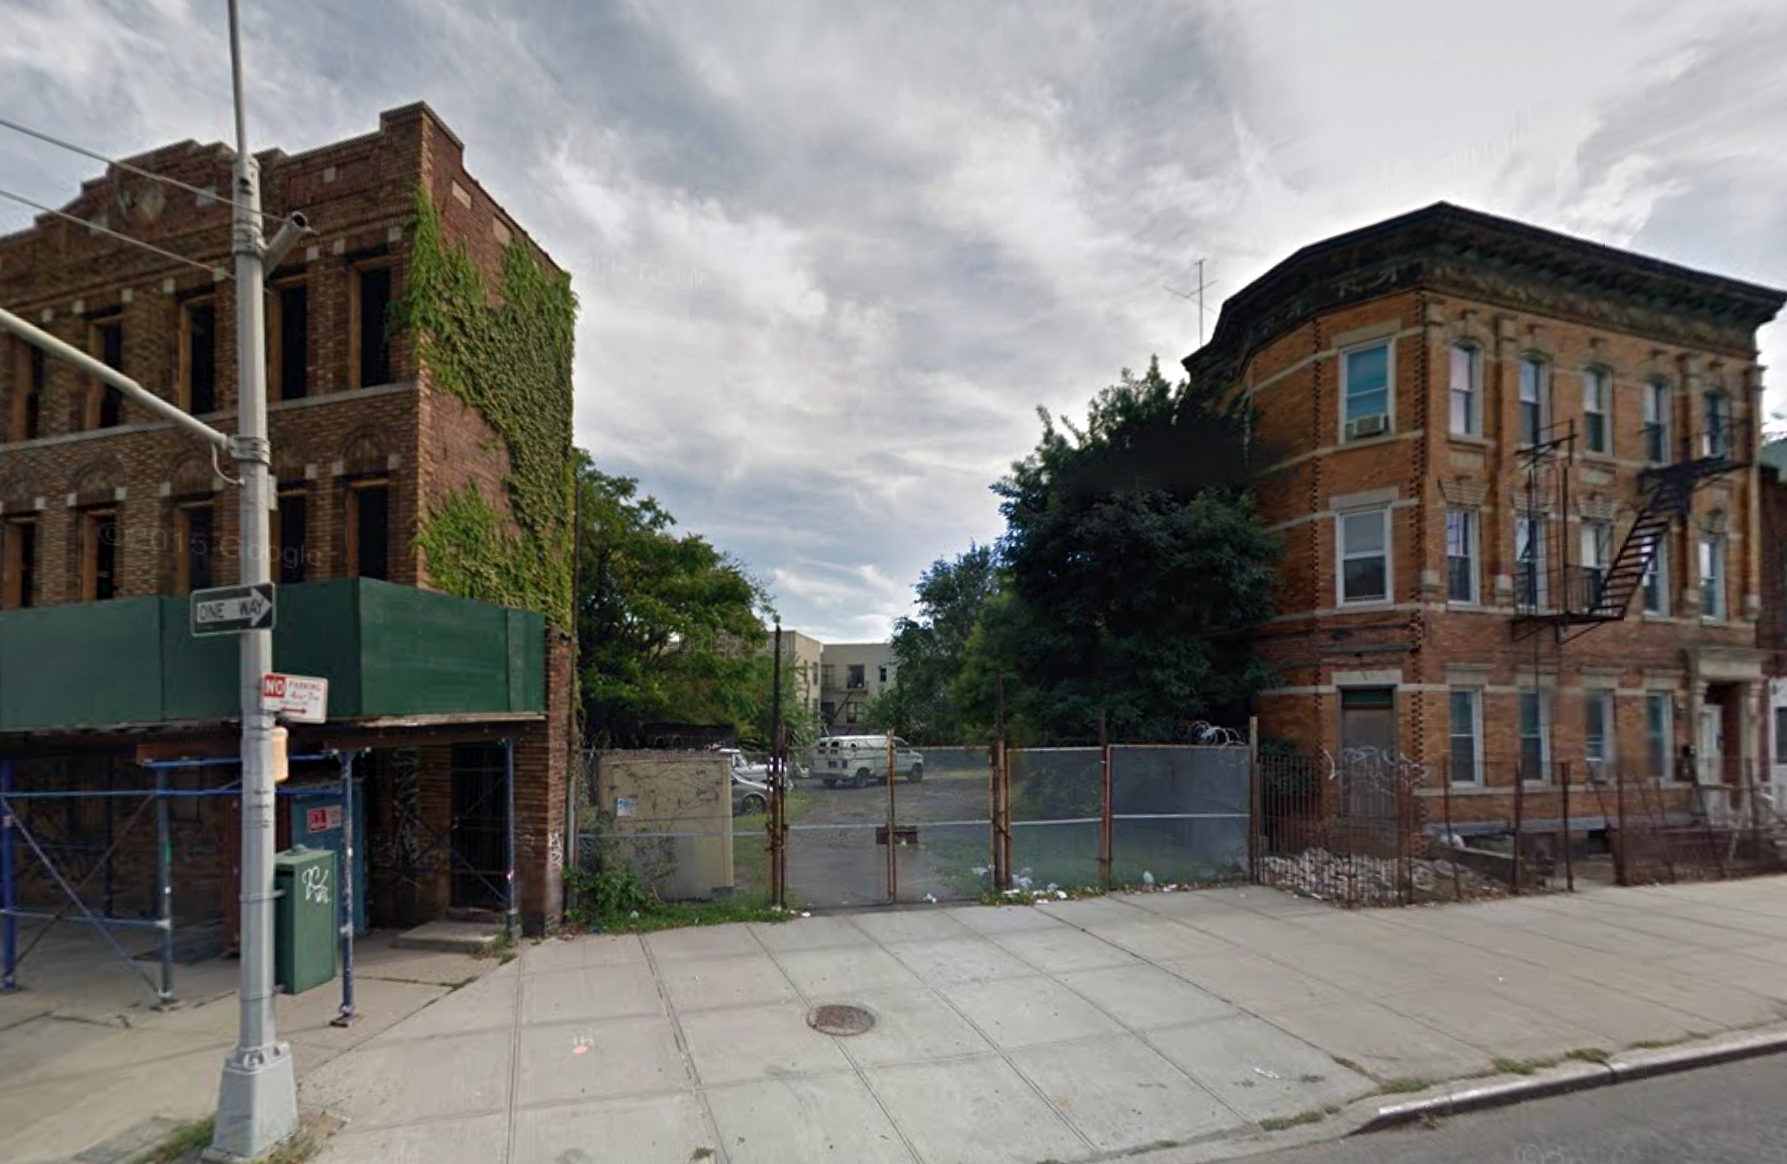 1668 Eastern Parkway. Via Google Maps